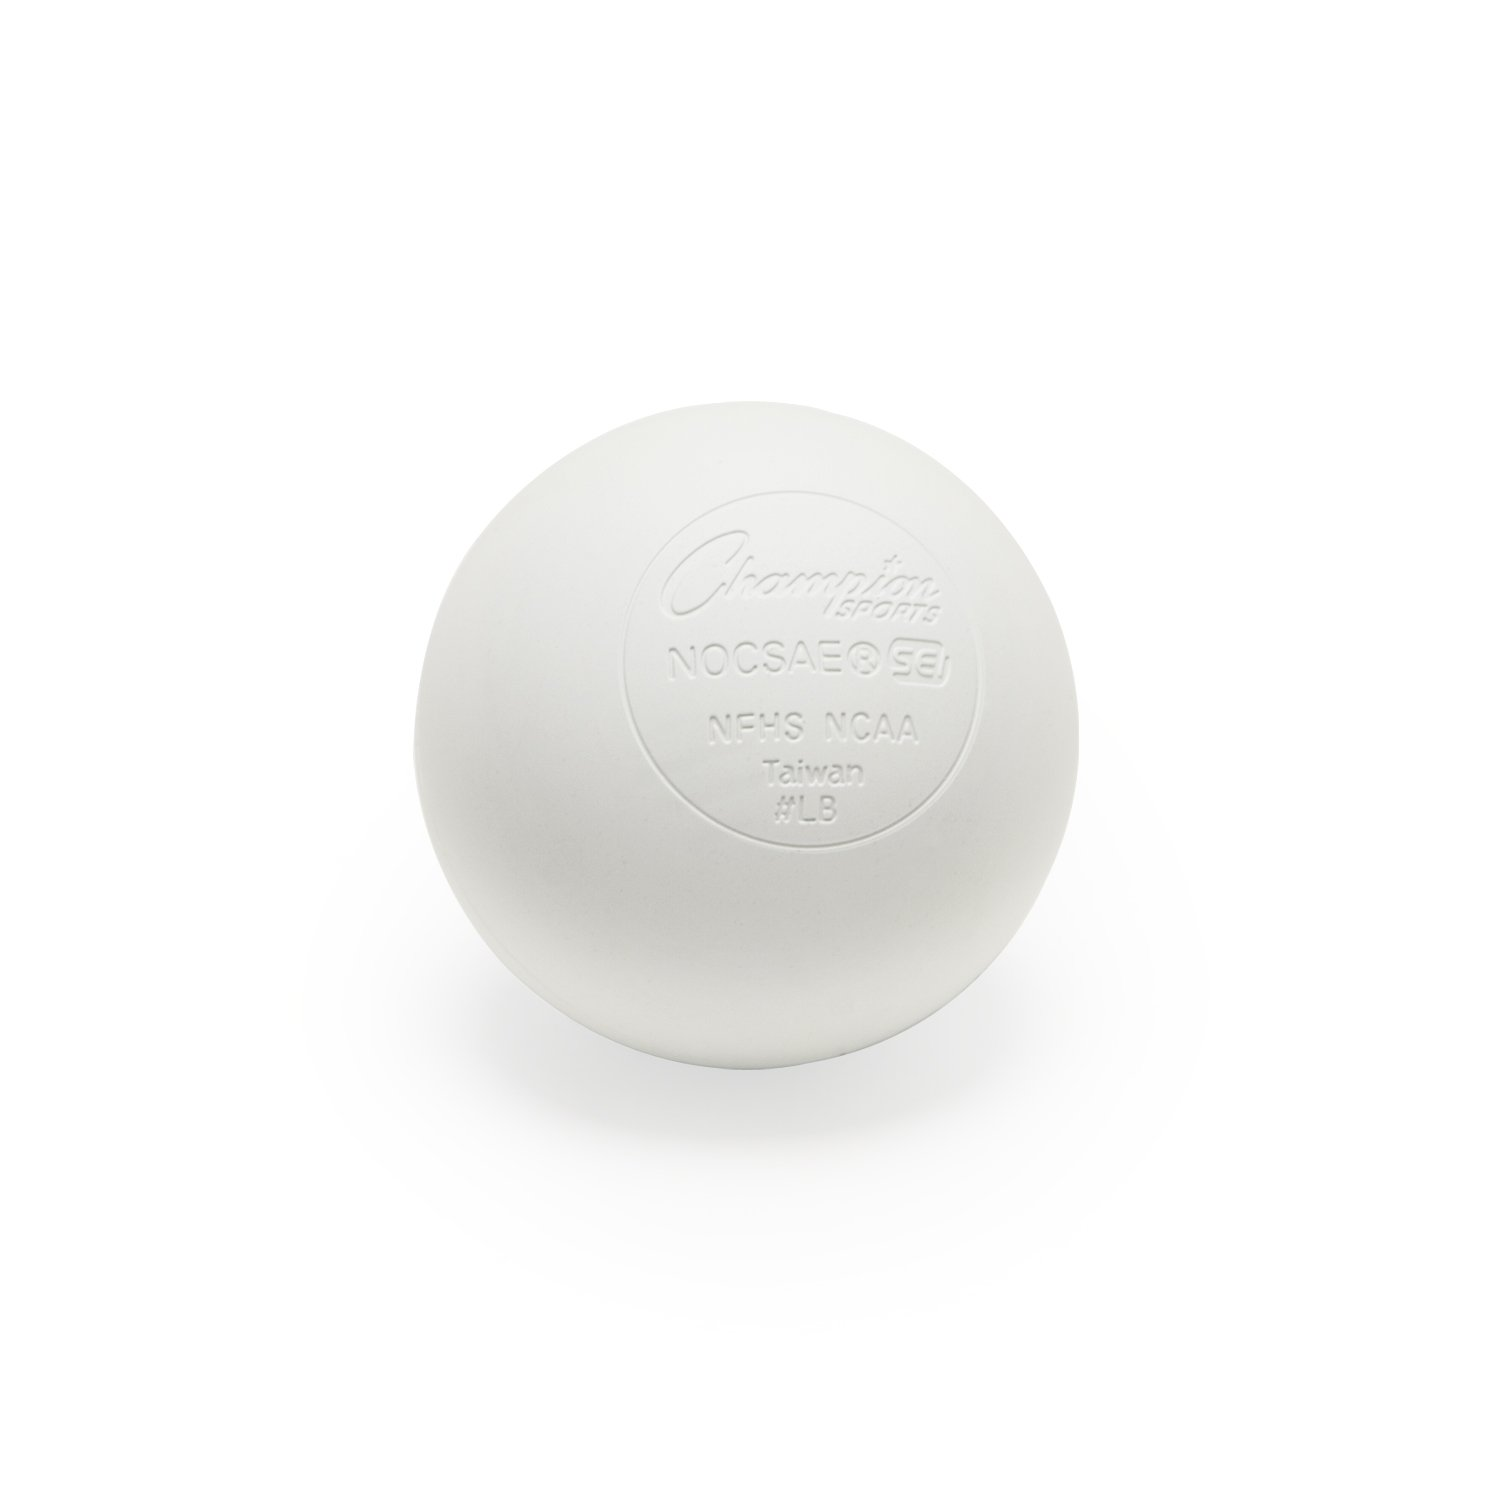 Champion Sports Official Lacrosse Balls - Various Colors Available in Packs of 6, 12, 24, 48, and 96